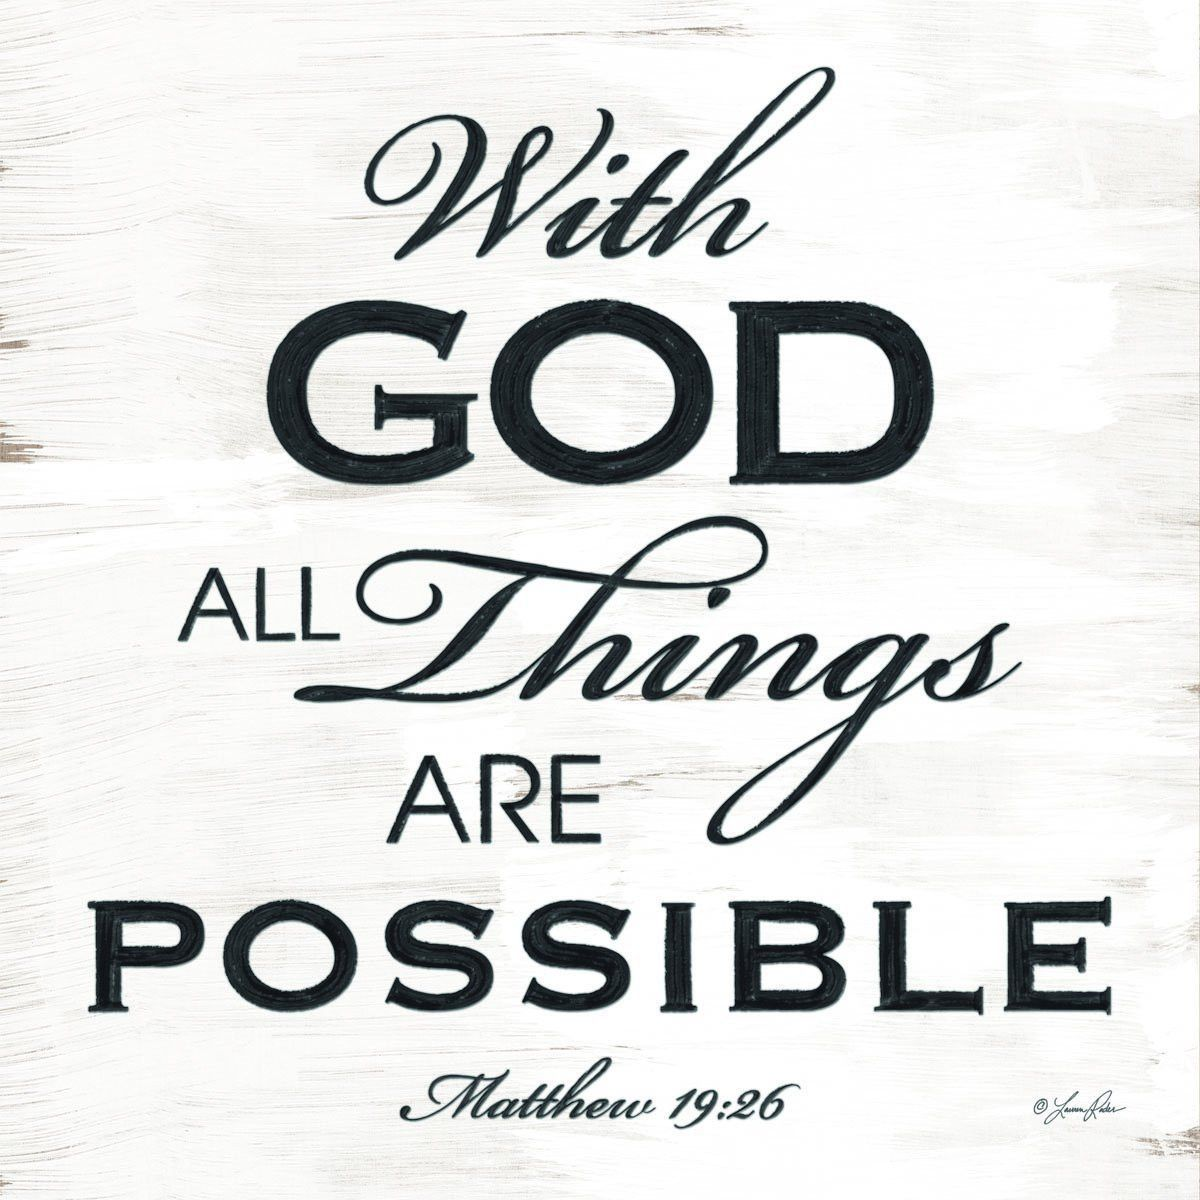 Matthew 1926 With God All Things Are Possible Christian Plaque